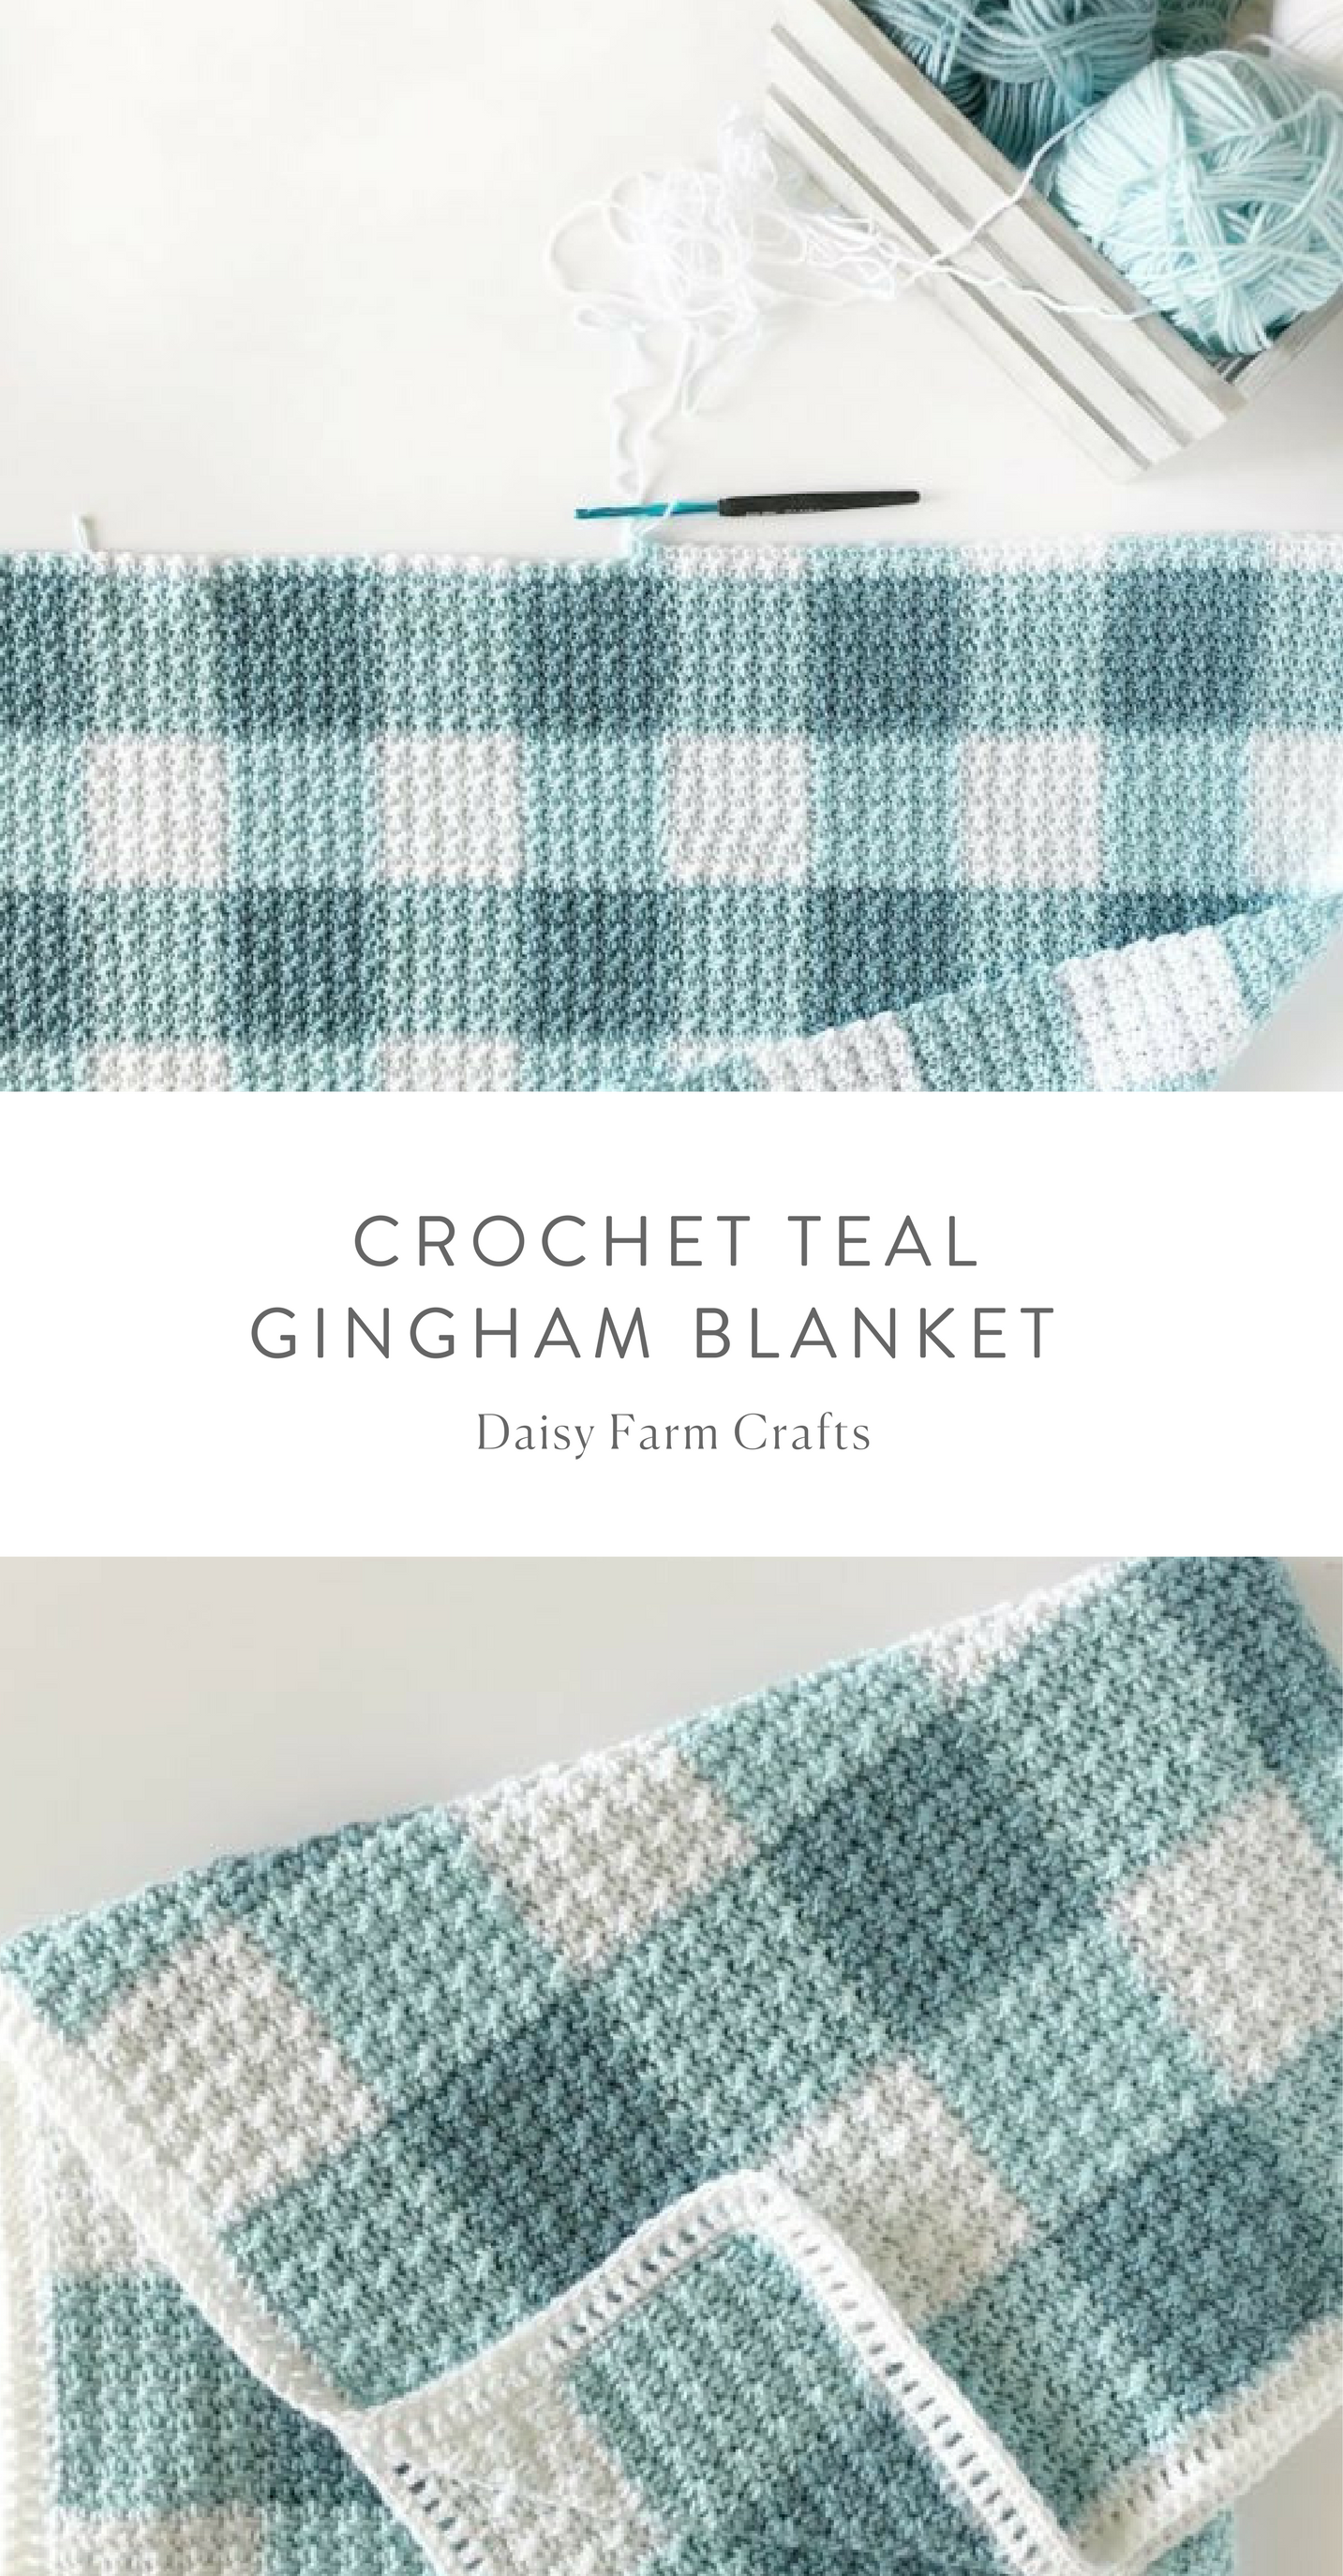 Free Pattern - Crochet Teal Gingham Blanket | _Crochet Decor 15 ...